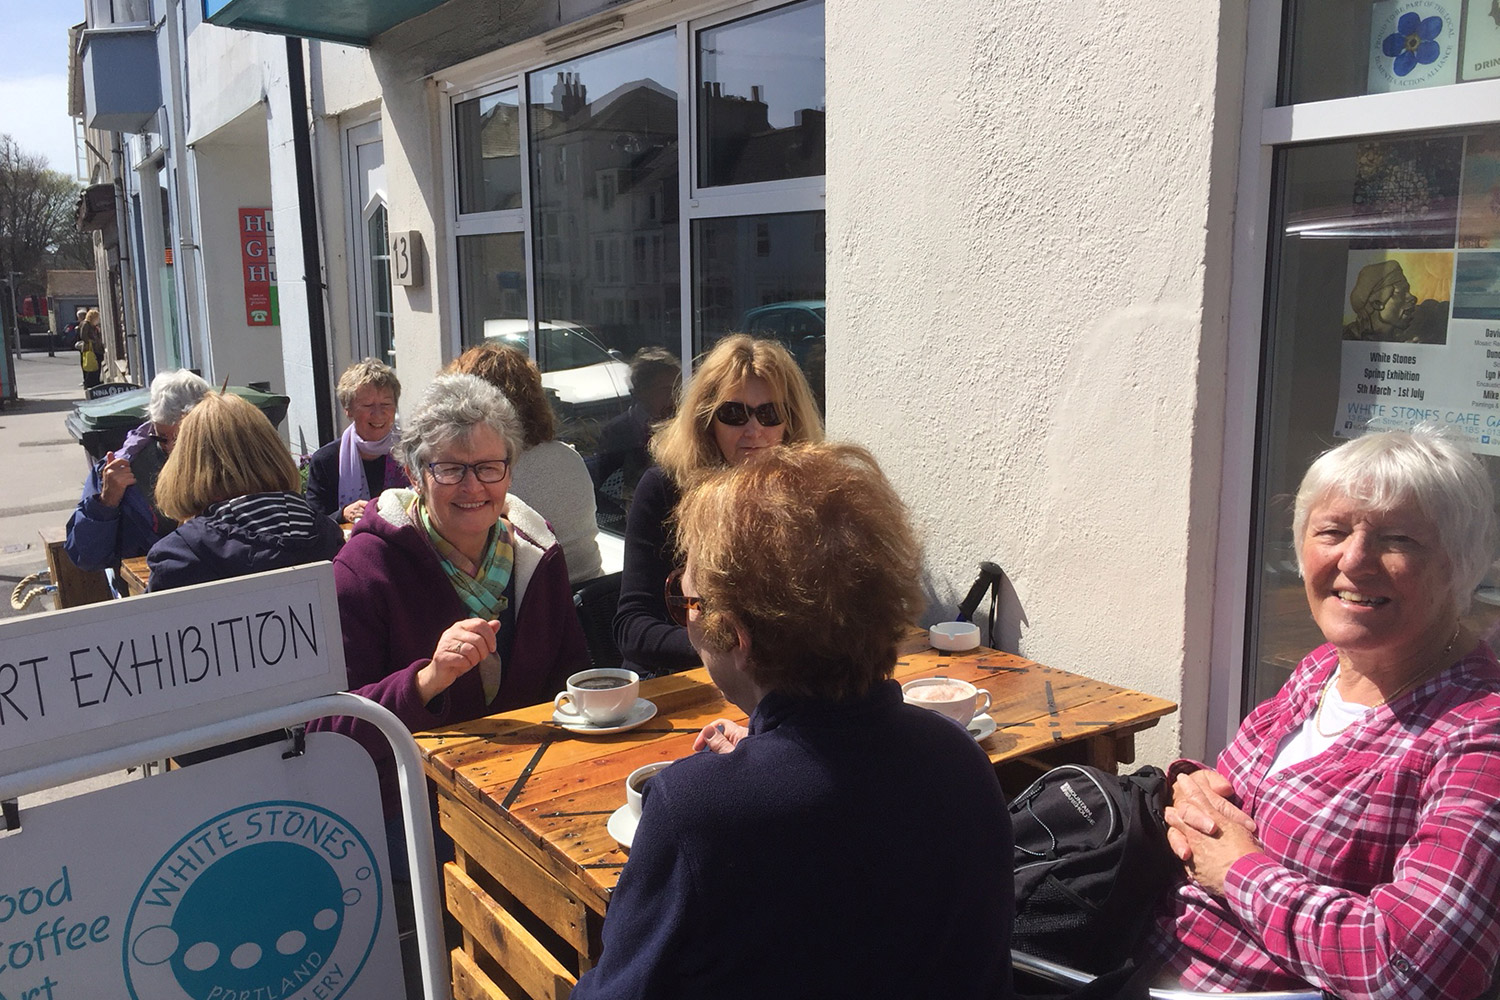 diners-chatting-and-eating-outside-white-stones-art-cafe-gallery-portland-dorset.jpg